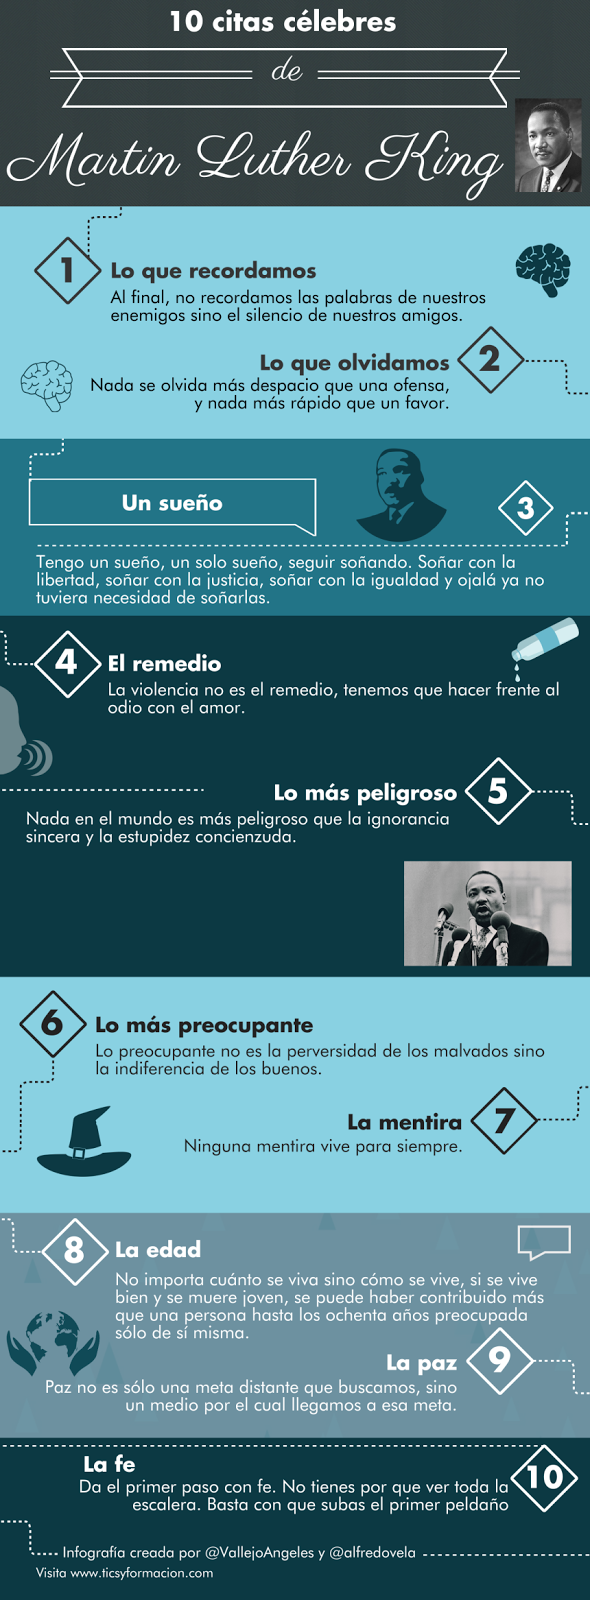 10-citas-martin-luther-king